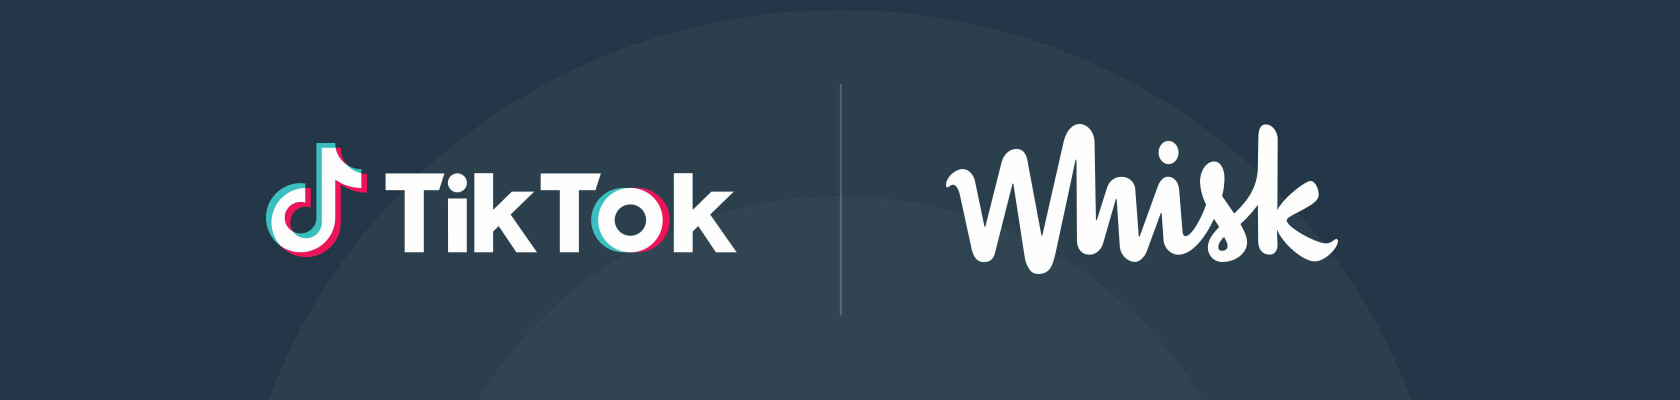 Announcing our partnership with TikTok